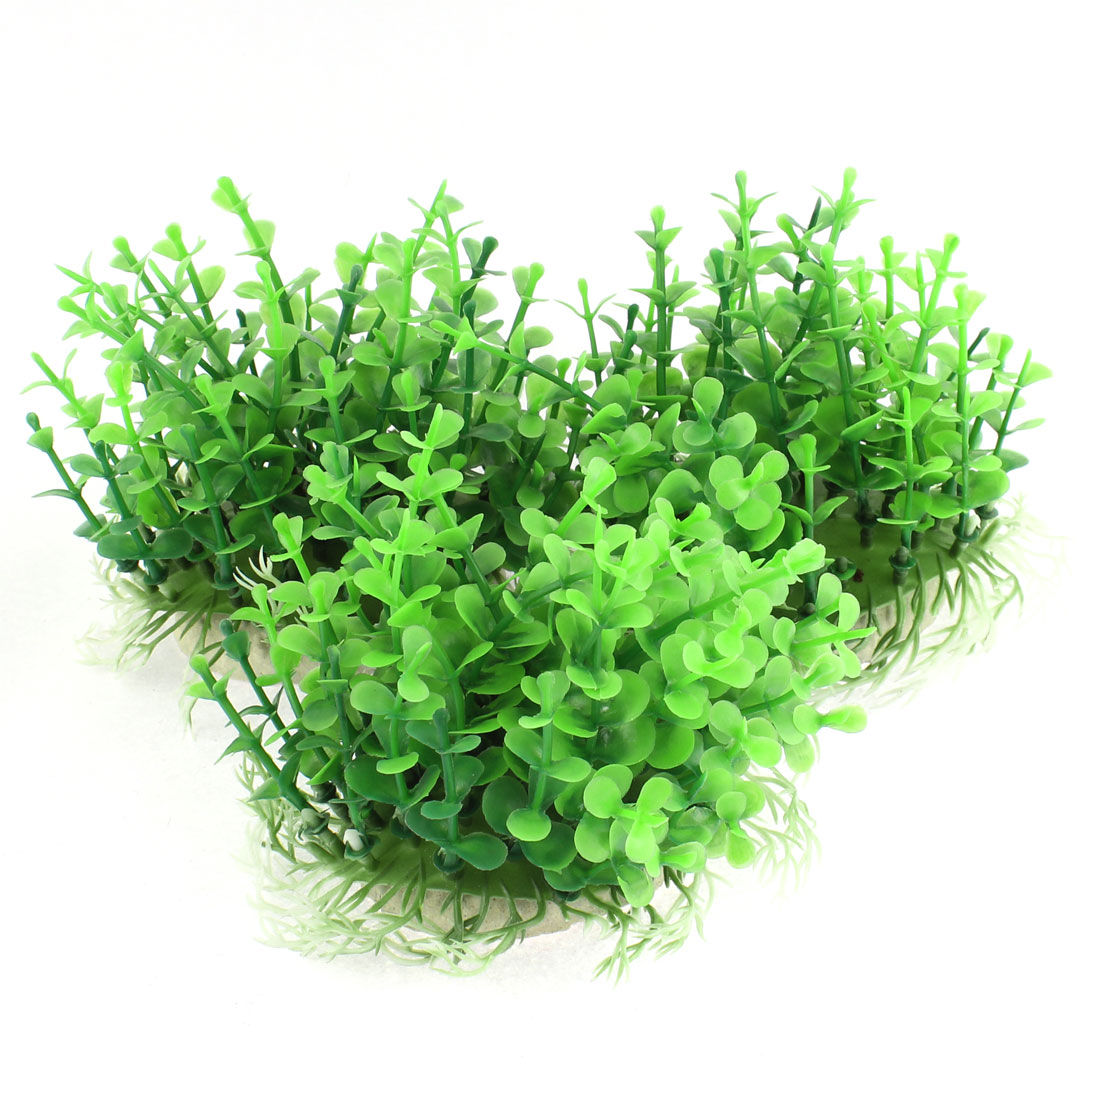 Aquarium Plastic Manmade Aquatic Plant Decoration Green 3PCS